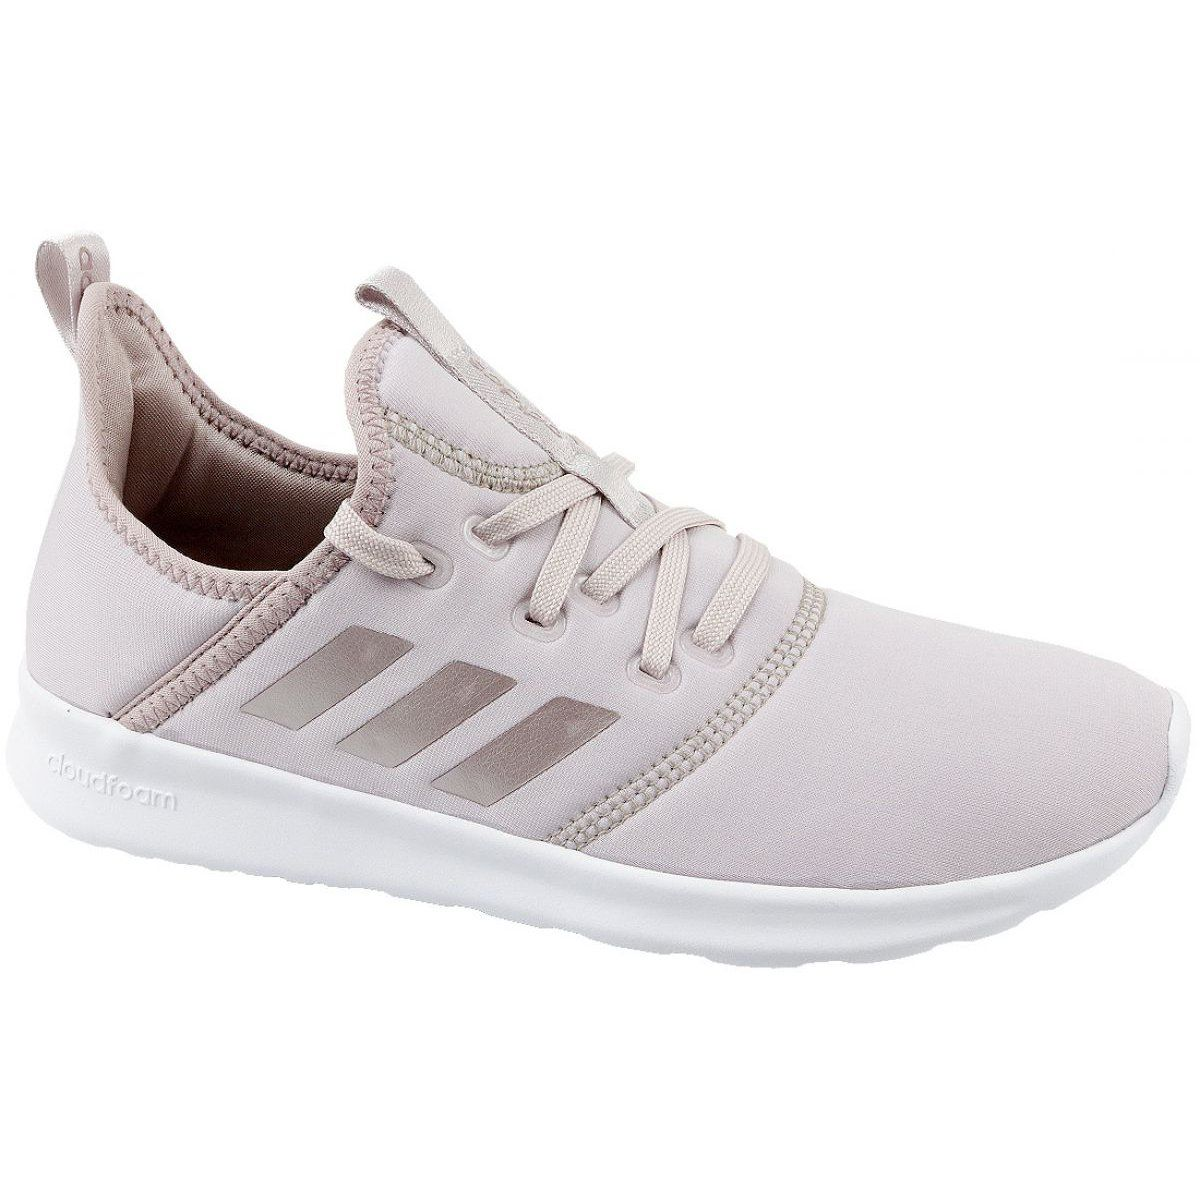 Adidas Cloudfoam Pure W DB1769 shoes pink | Womens pink sneakers ...